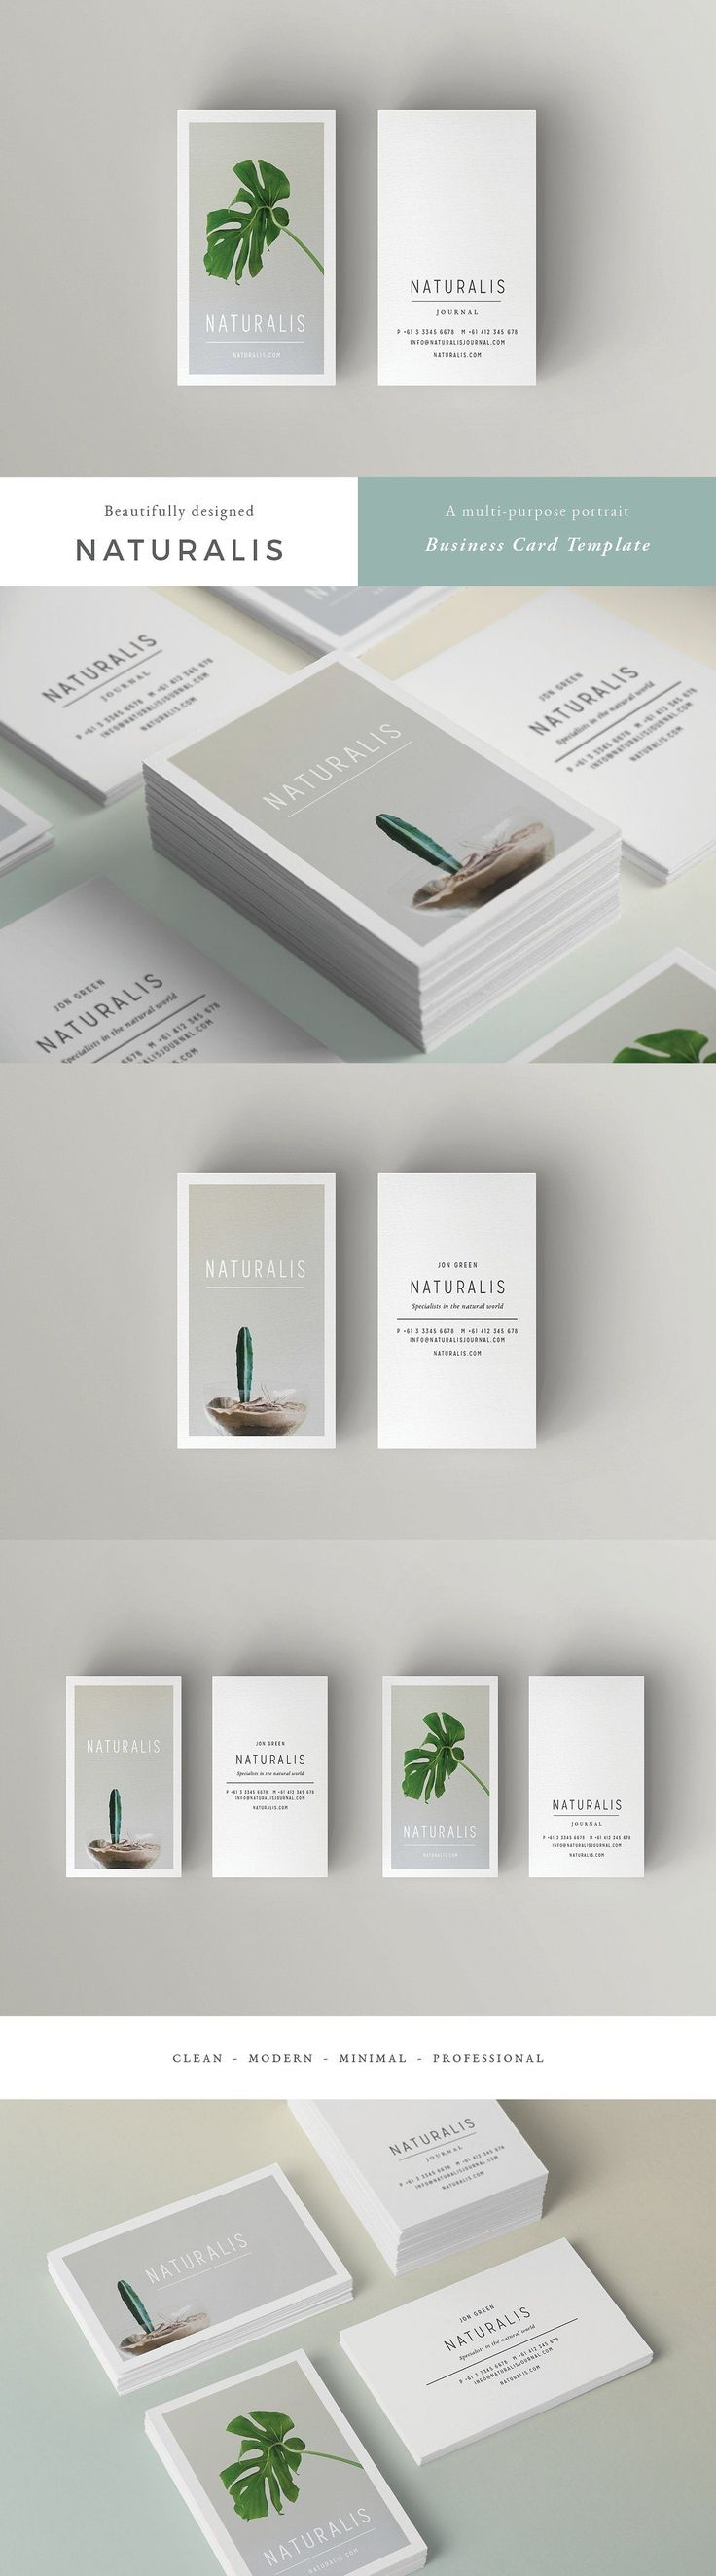 20 Clean and Minimal Business Cards That Stand Out ~ Creative Market Blog